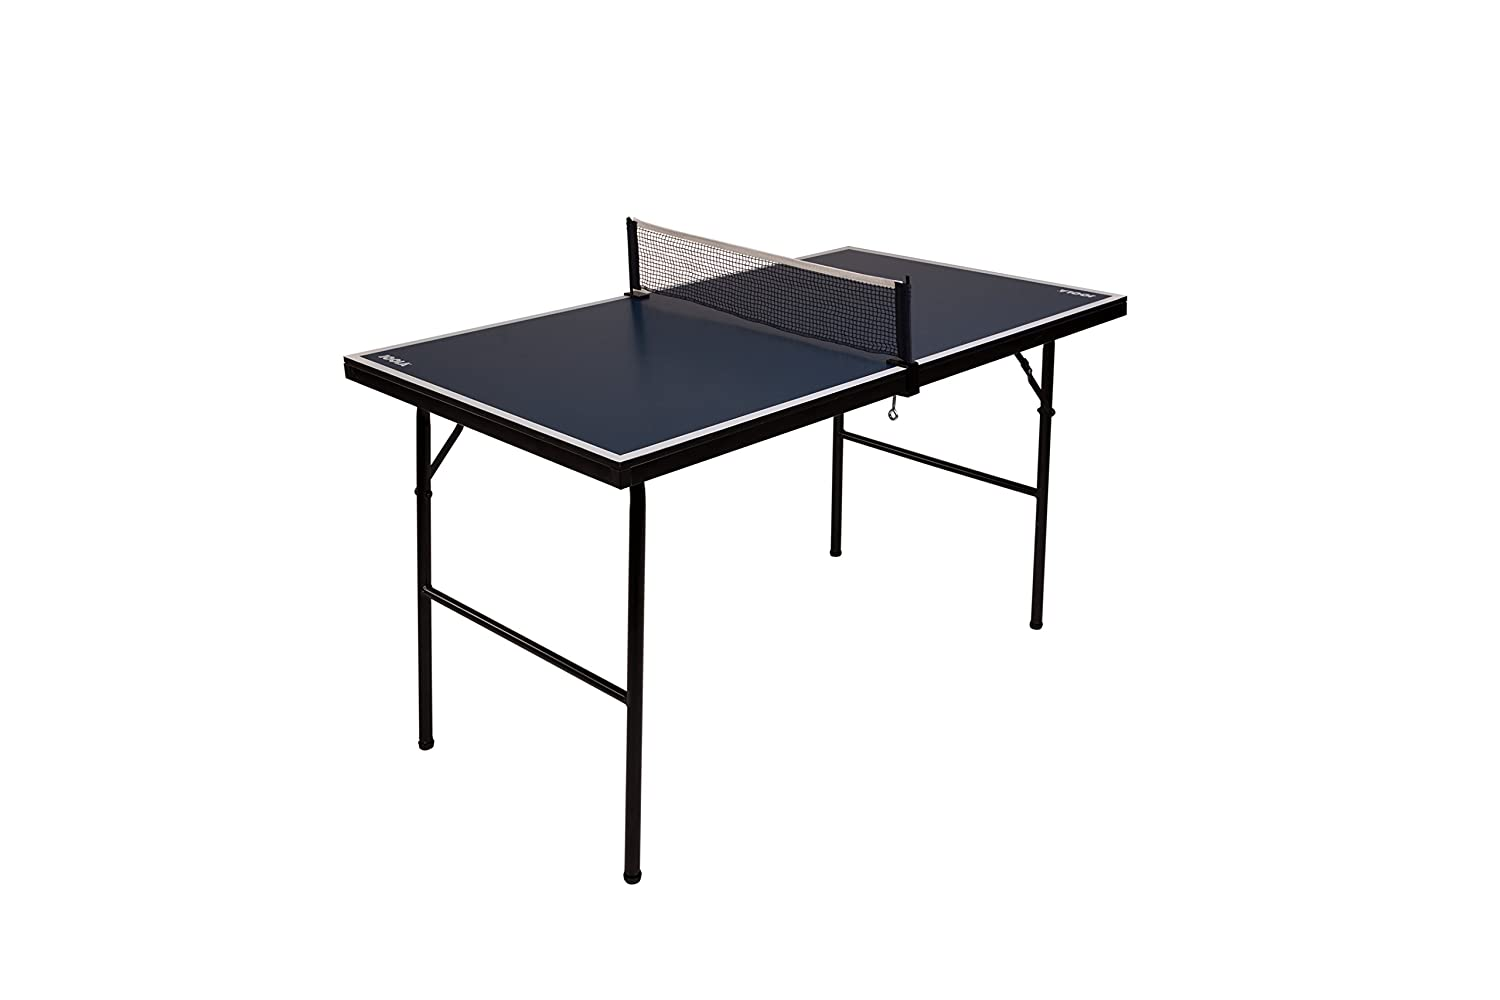 JOOLA Connect Mini Magnetic Multi-Configuration Table Tennis Table – Best Affordable Ping-pong Table